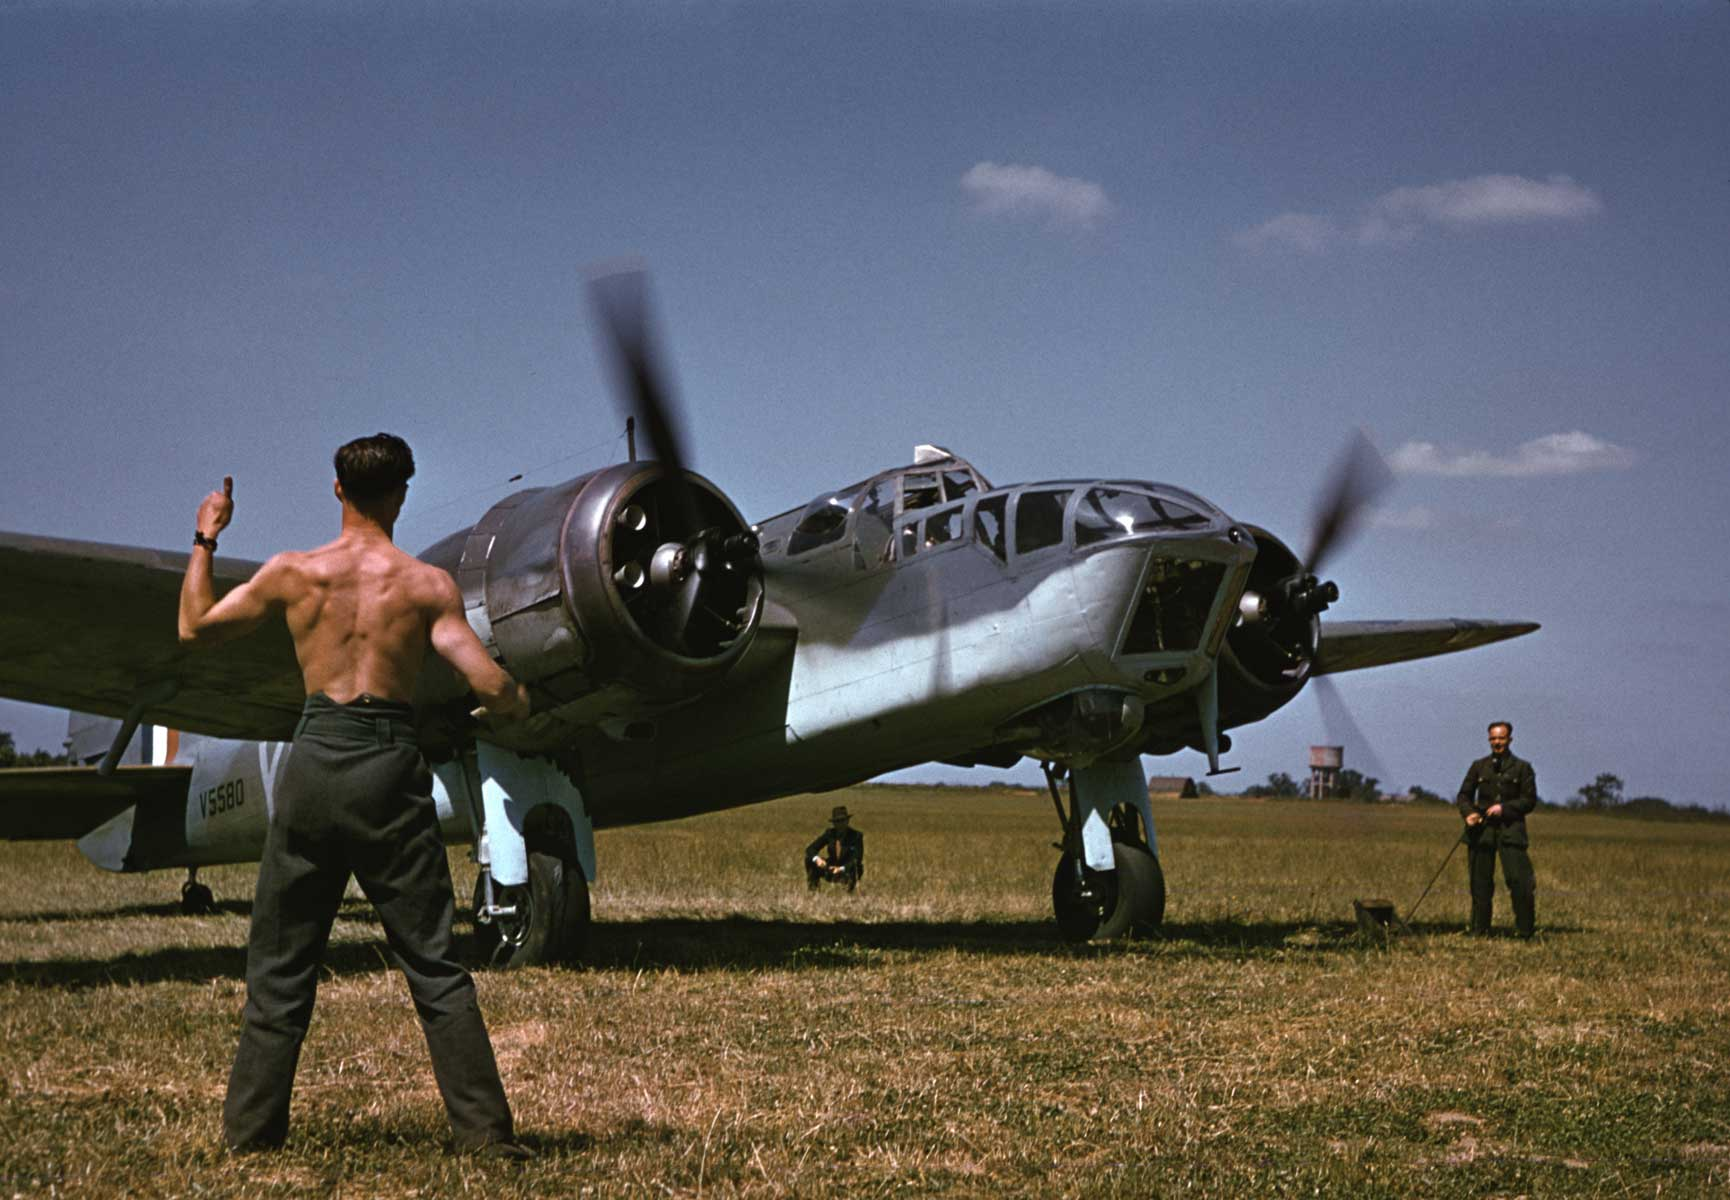 A mechanic signals for takeoff to an Allied pilot before a raid over Occupied France, England, 1941.